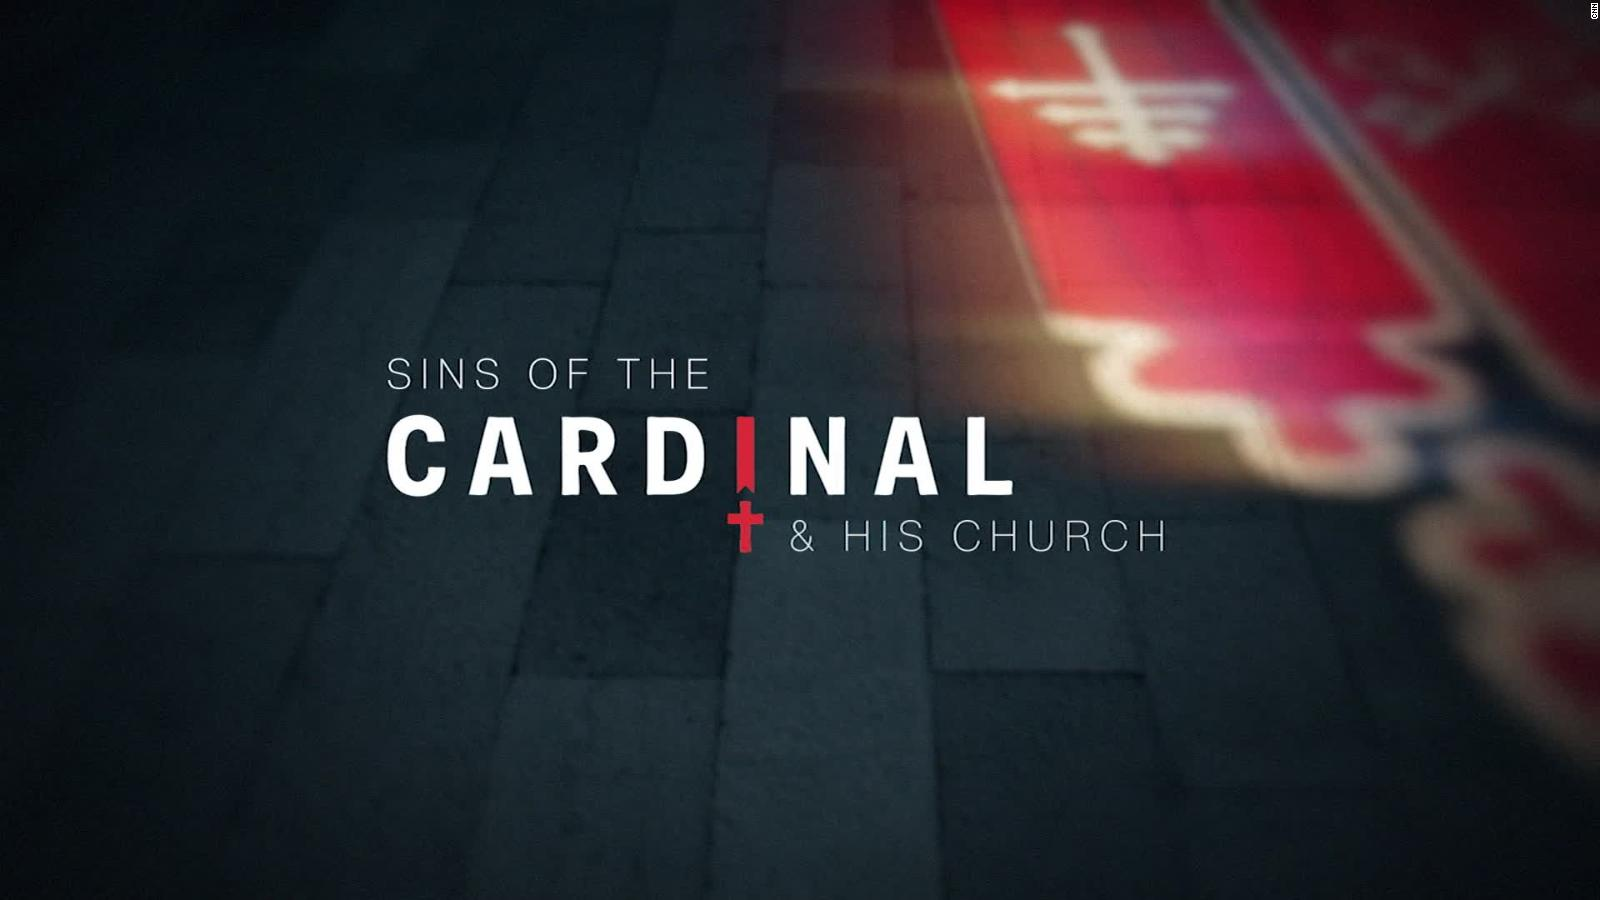 'Sins of the Cardinal & His Church' full documentary